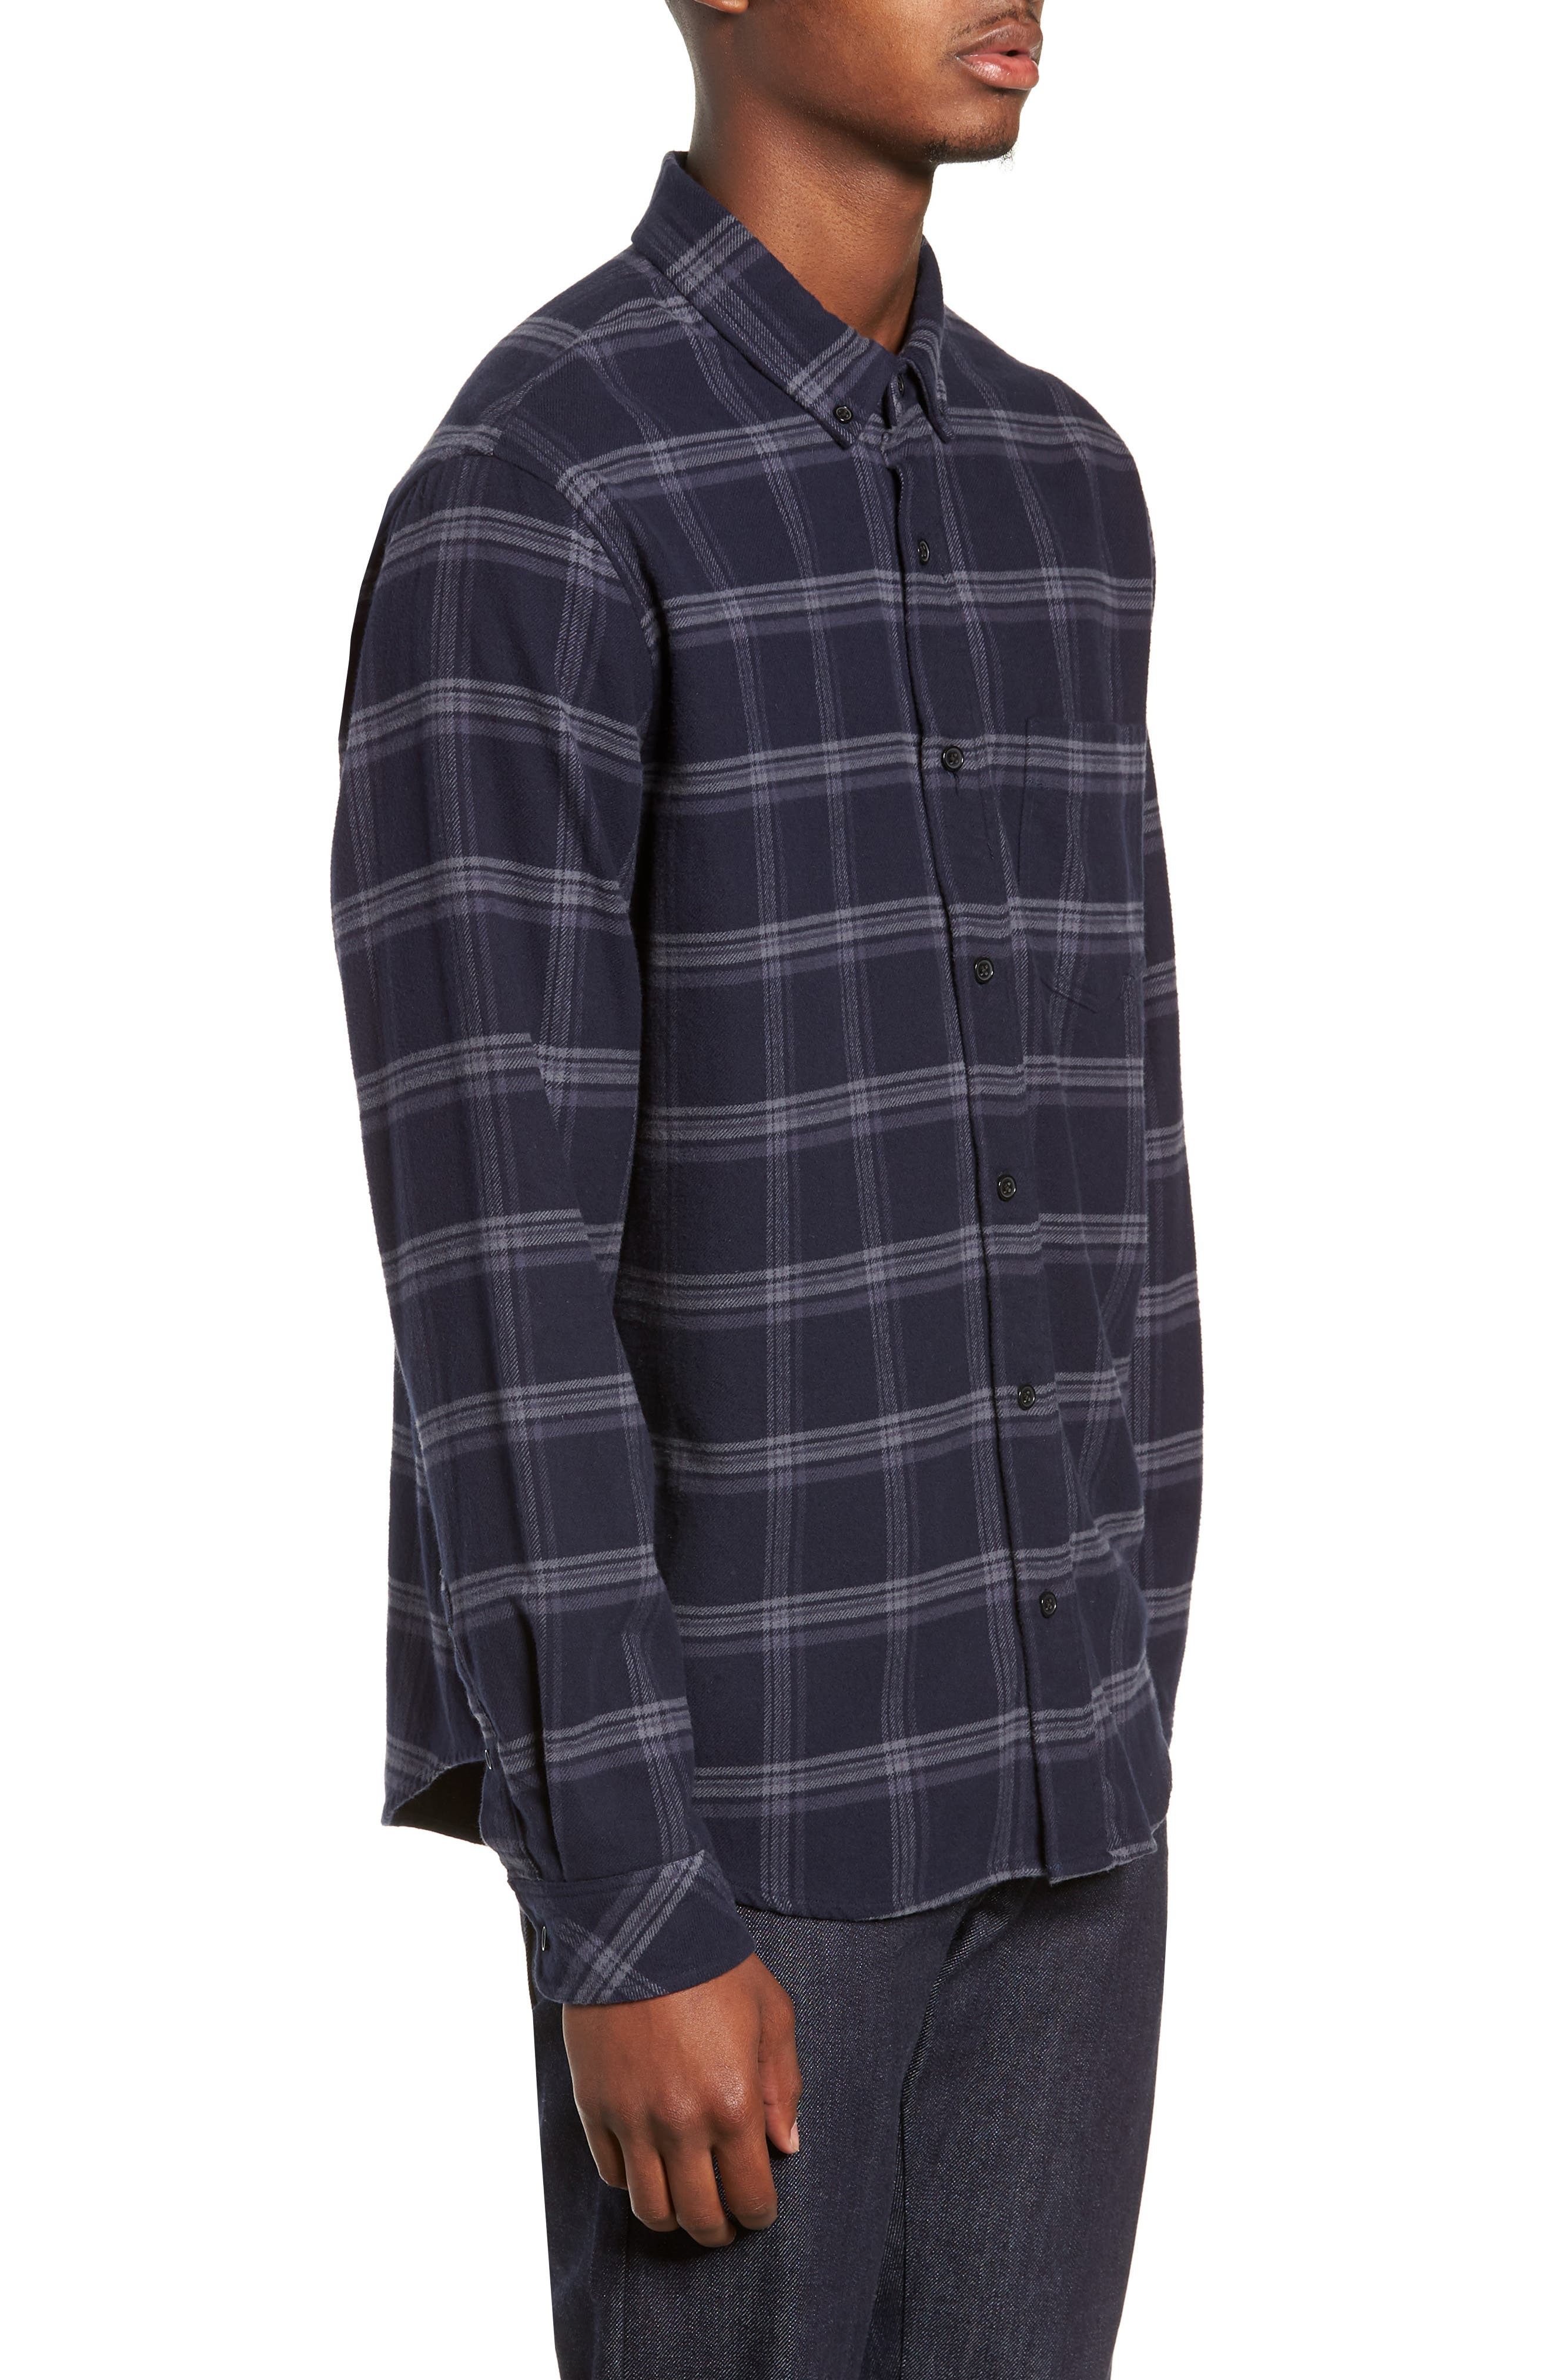 Forrest Slim Fit Plaid Flannel Sport Shirt,                             Alternate thumbnail 4, color,                             NAVY/HEATHERED CHARCOAL